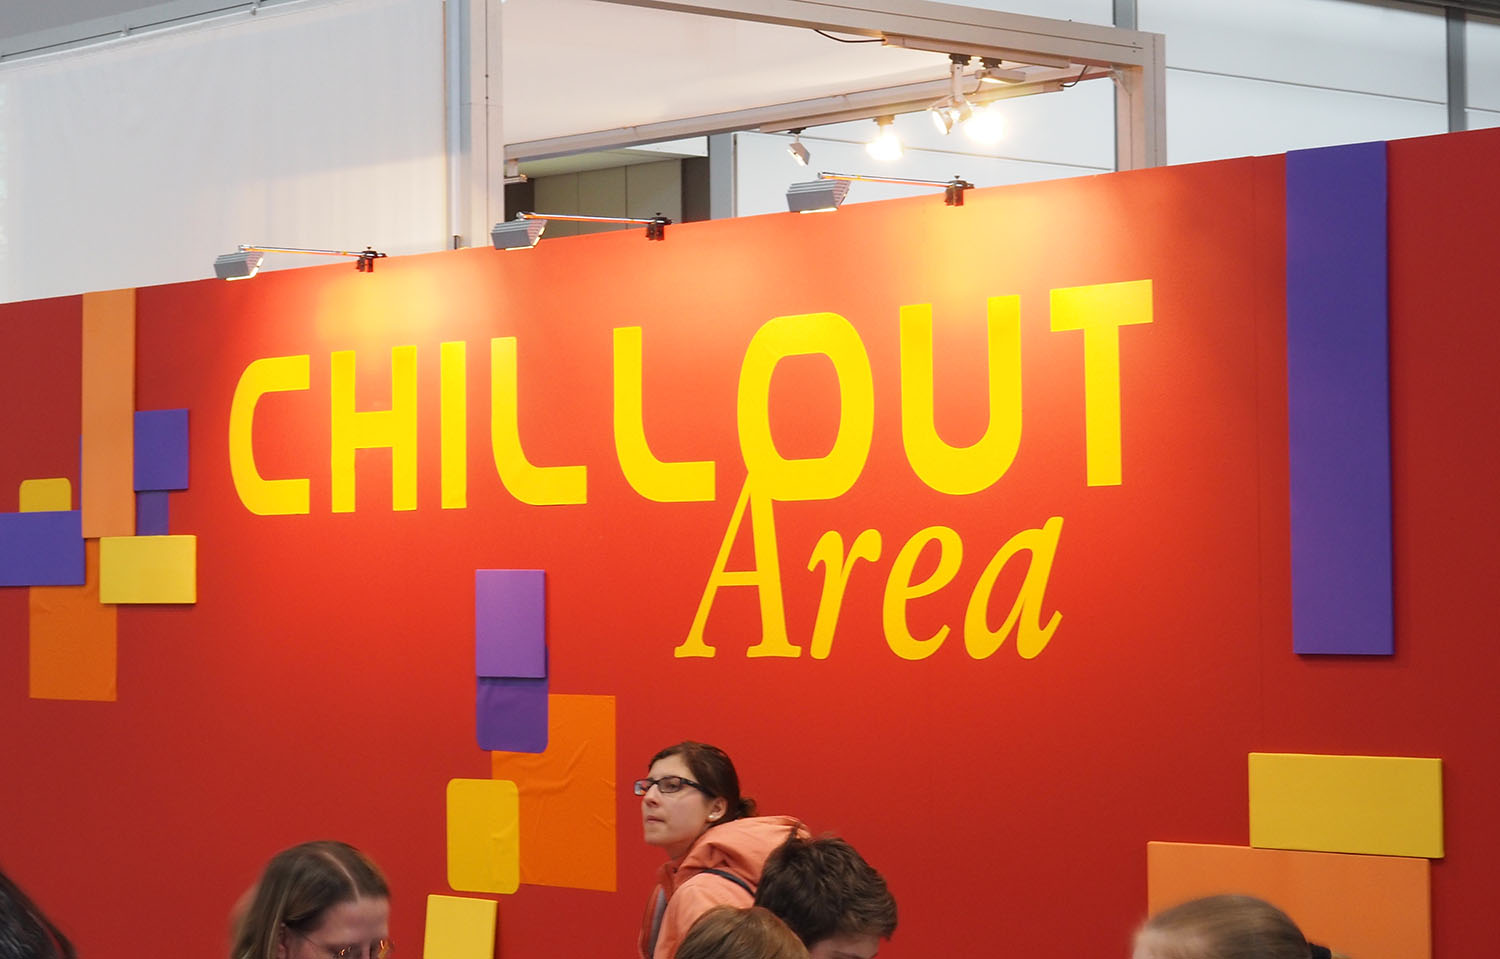 Chillout Area